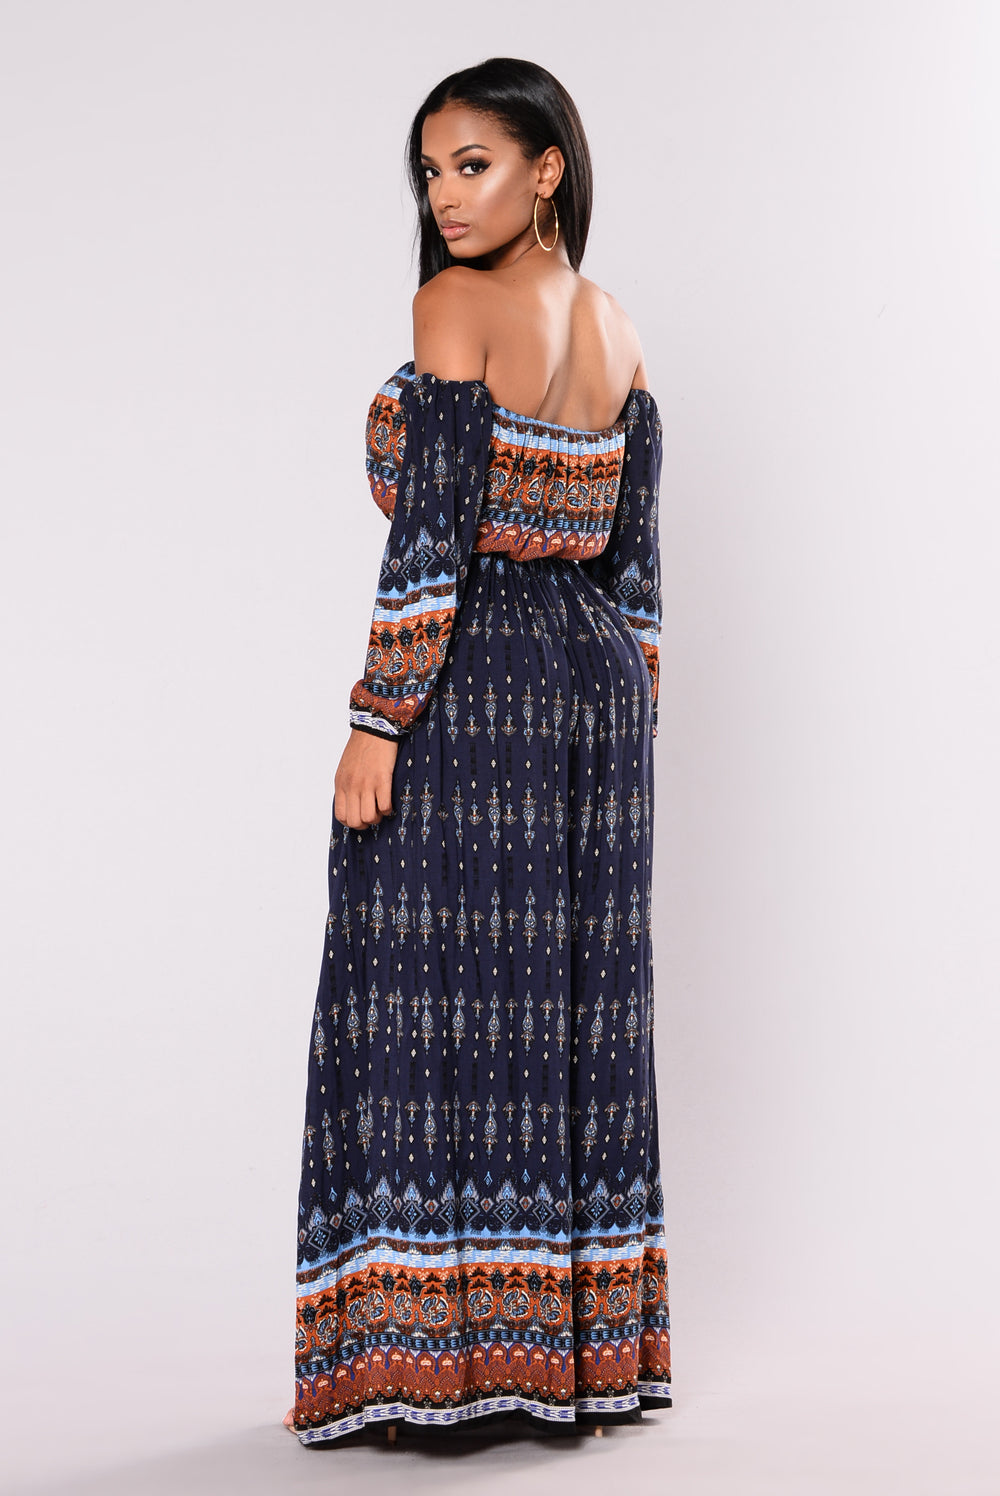 Canary Island Maxi Dress - Navy